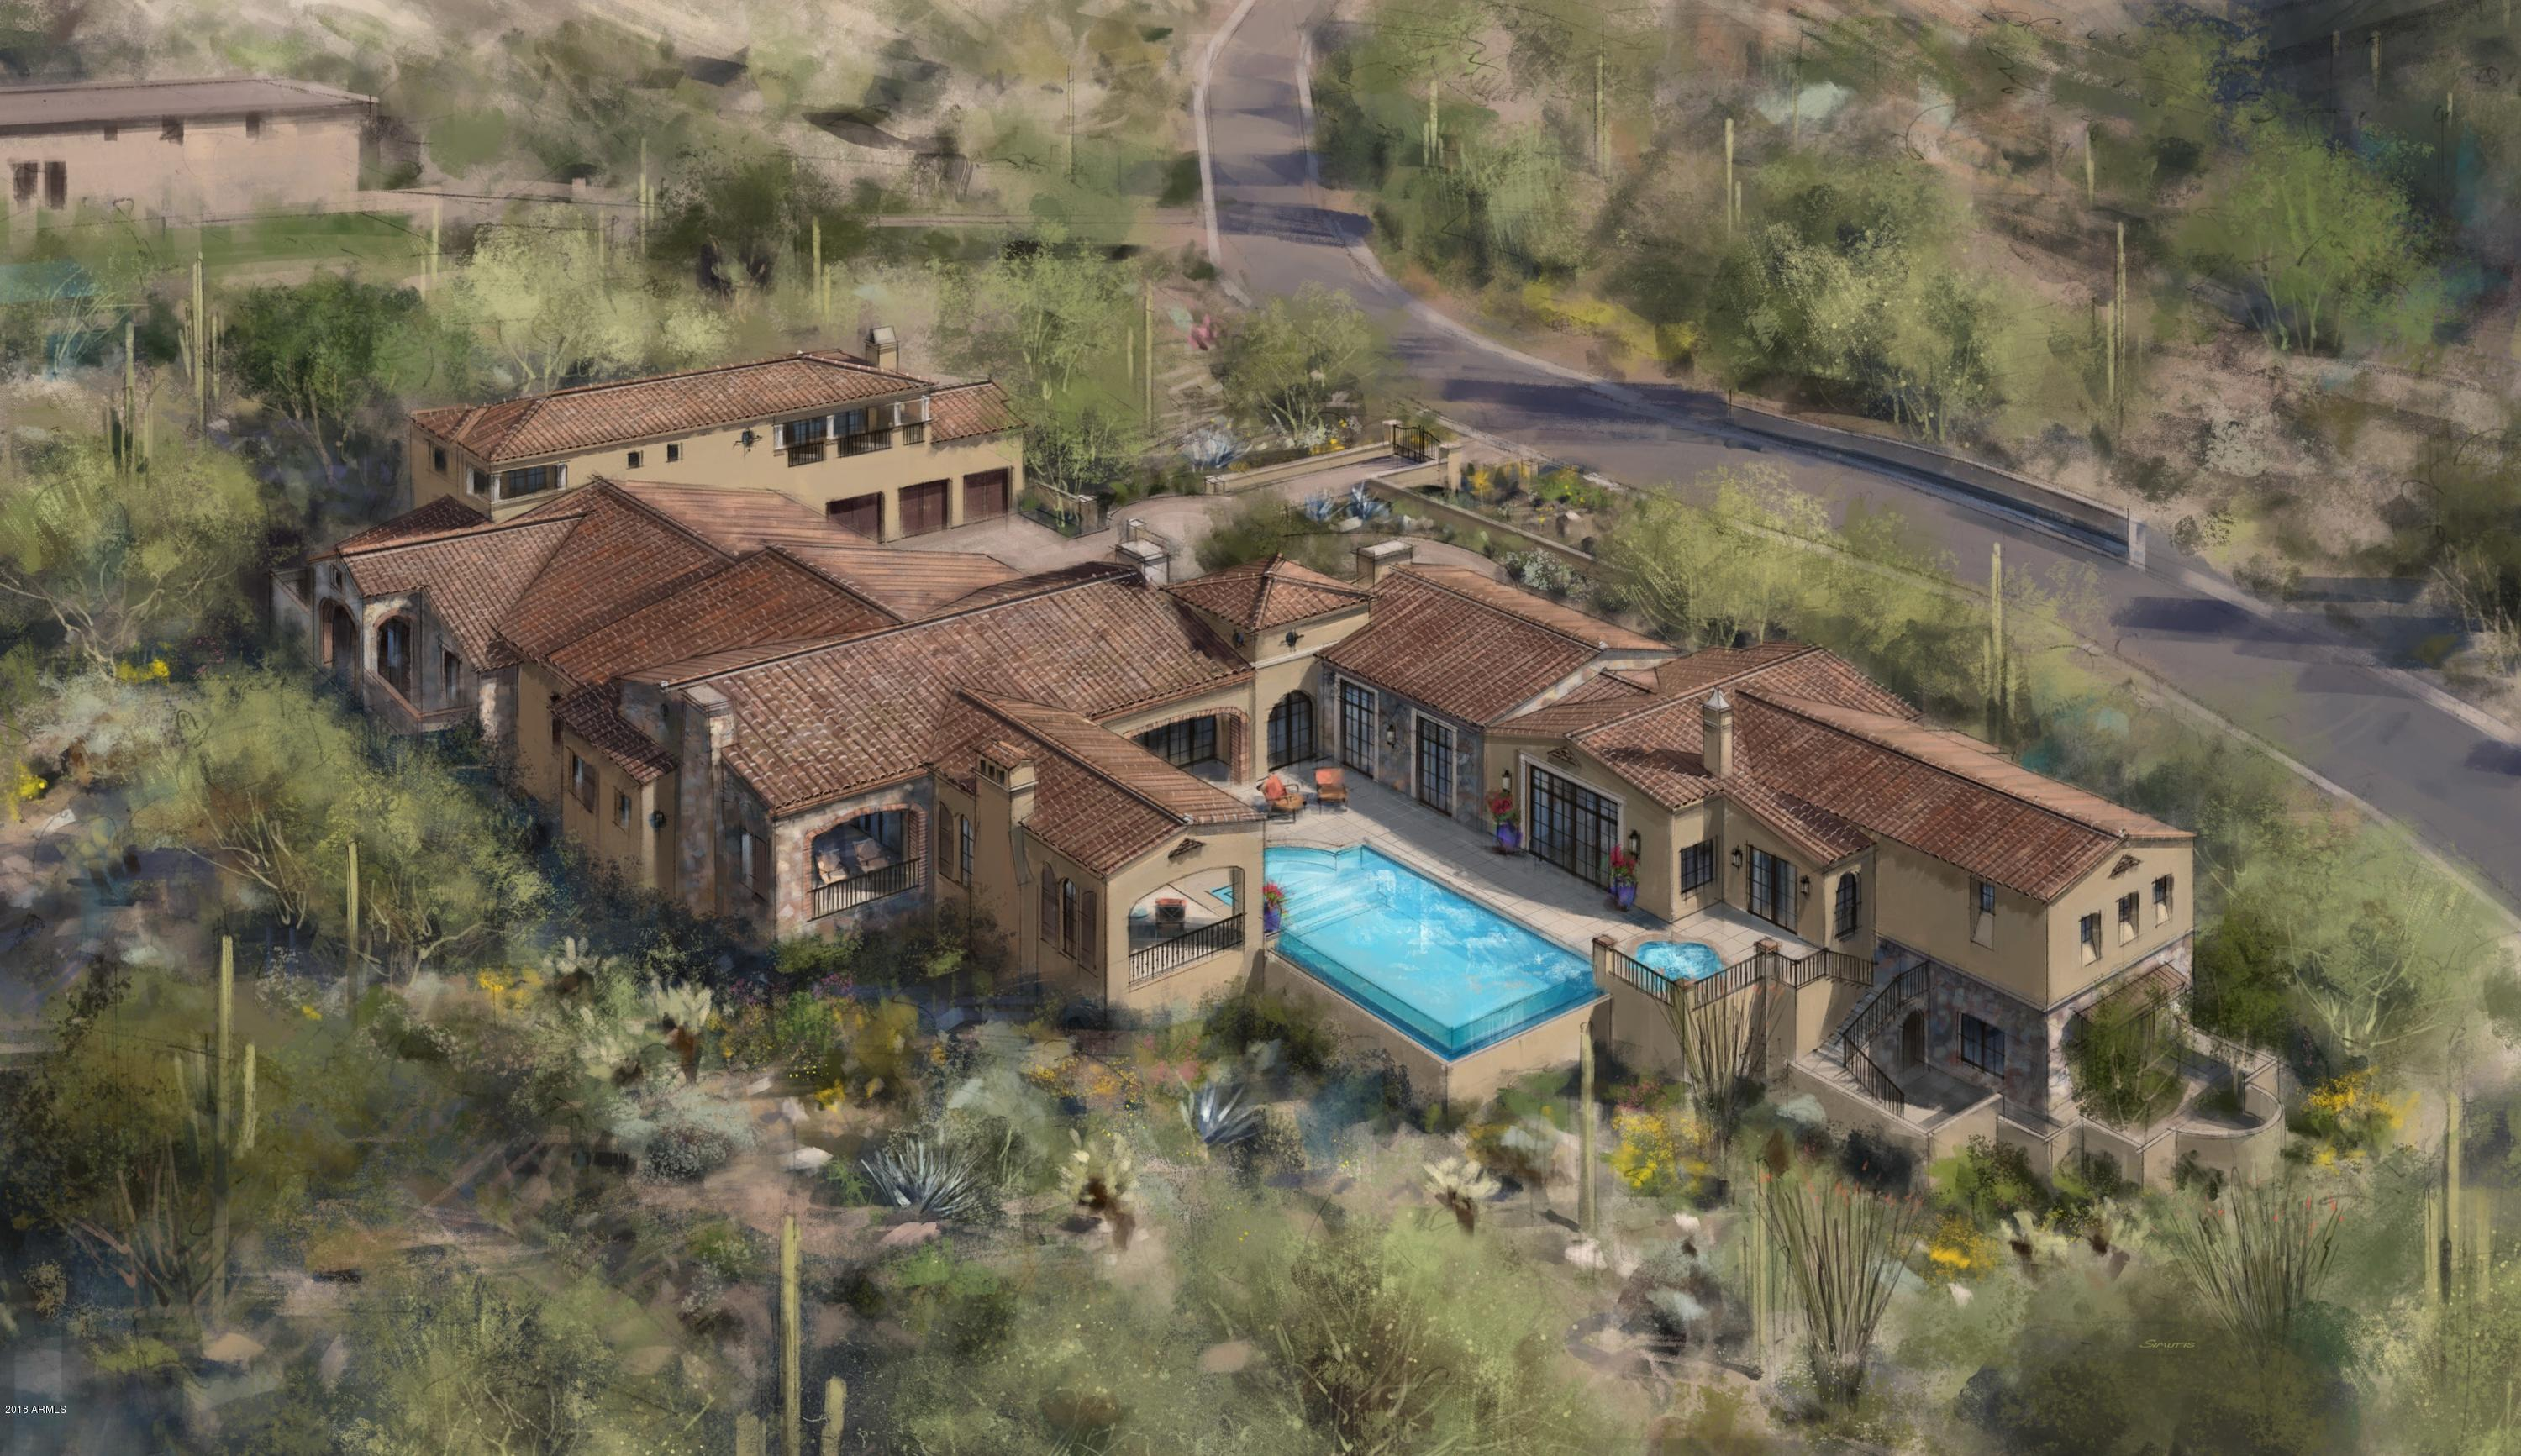 MLS 5829944 11004 E Feathersong Lane, Scottsdale, AZ 85255 Scottsdale AZ Luxury